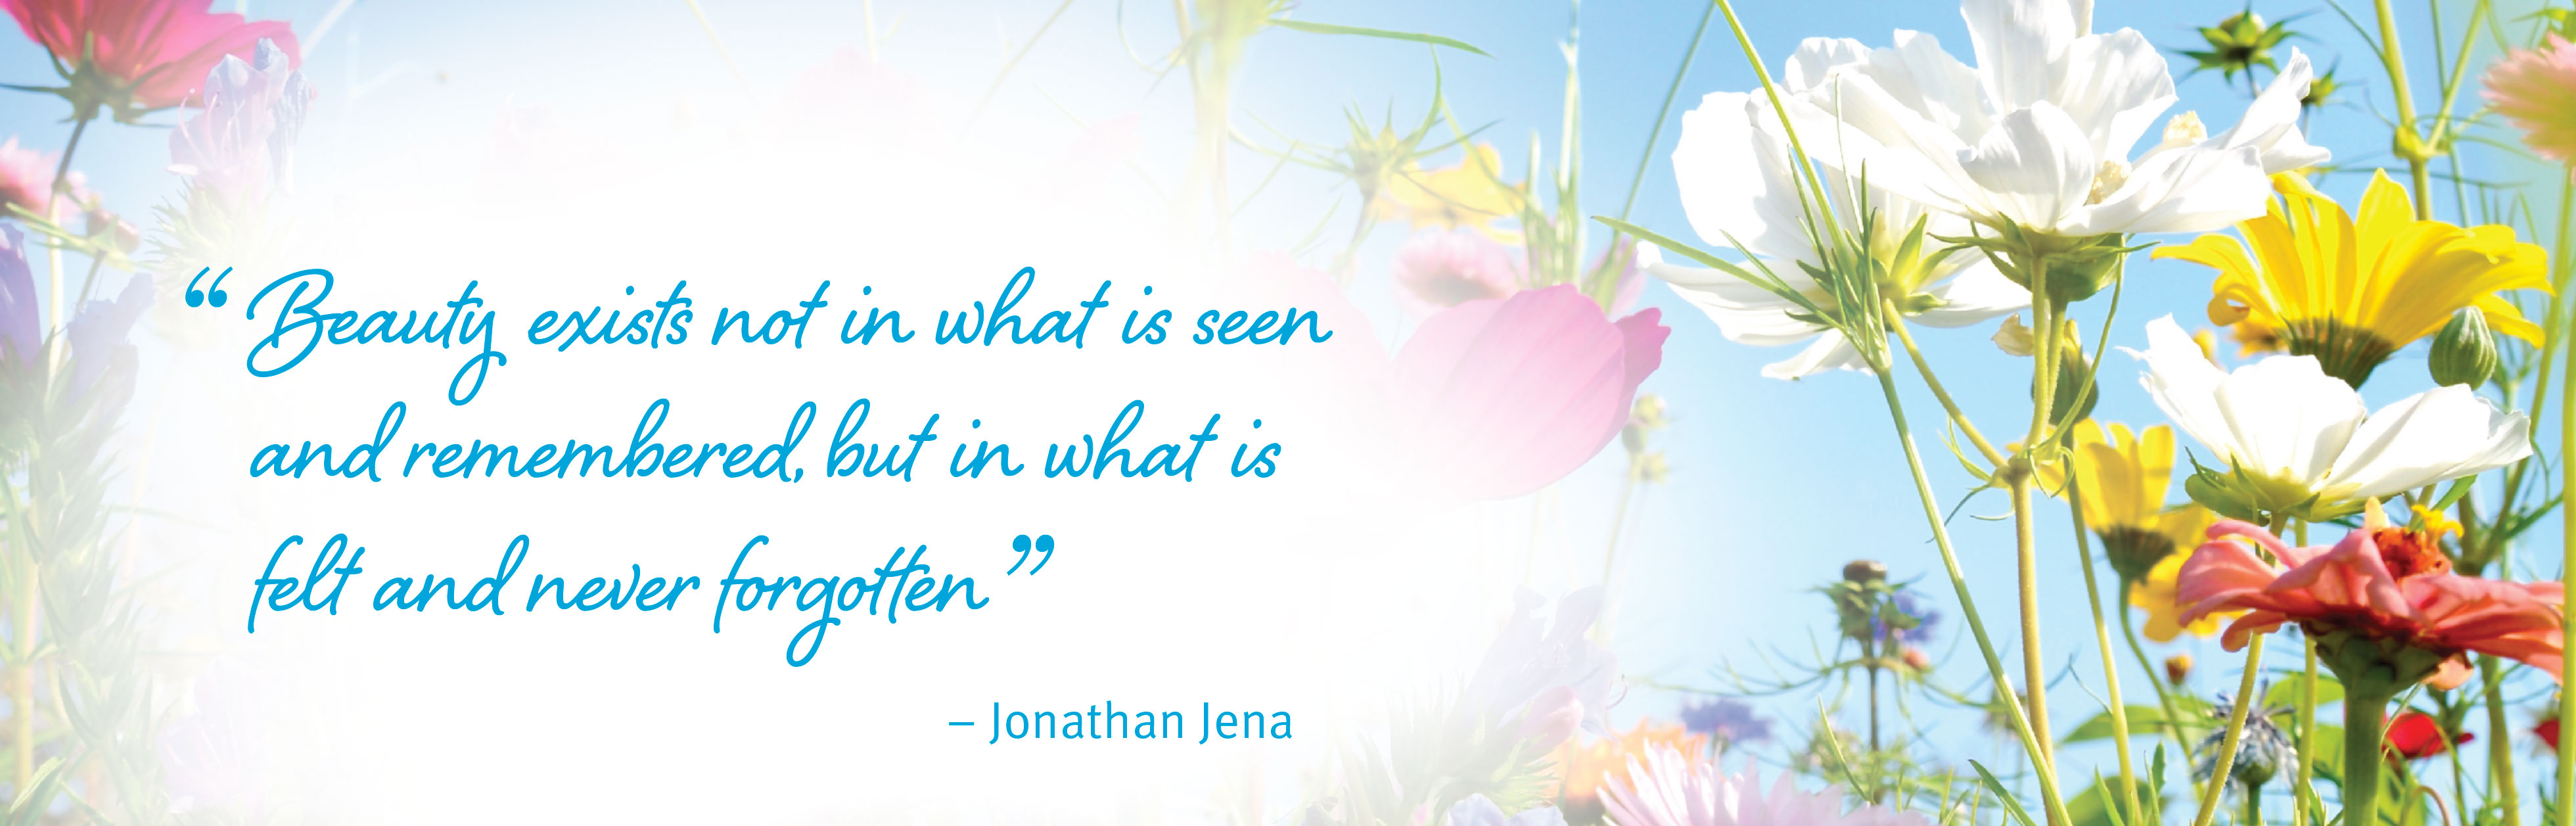 Beauty exists not in what is seen and remembered, but in what is felt and never forgotten. - Jonathan Jena